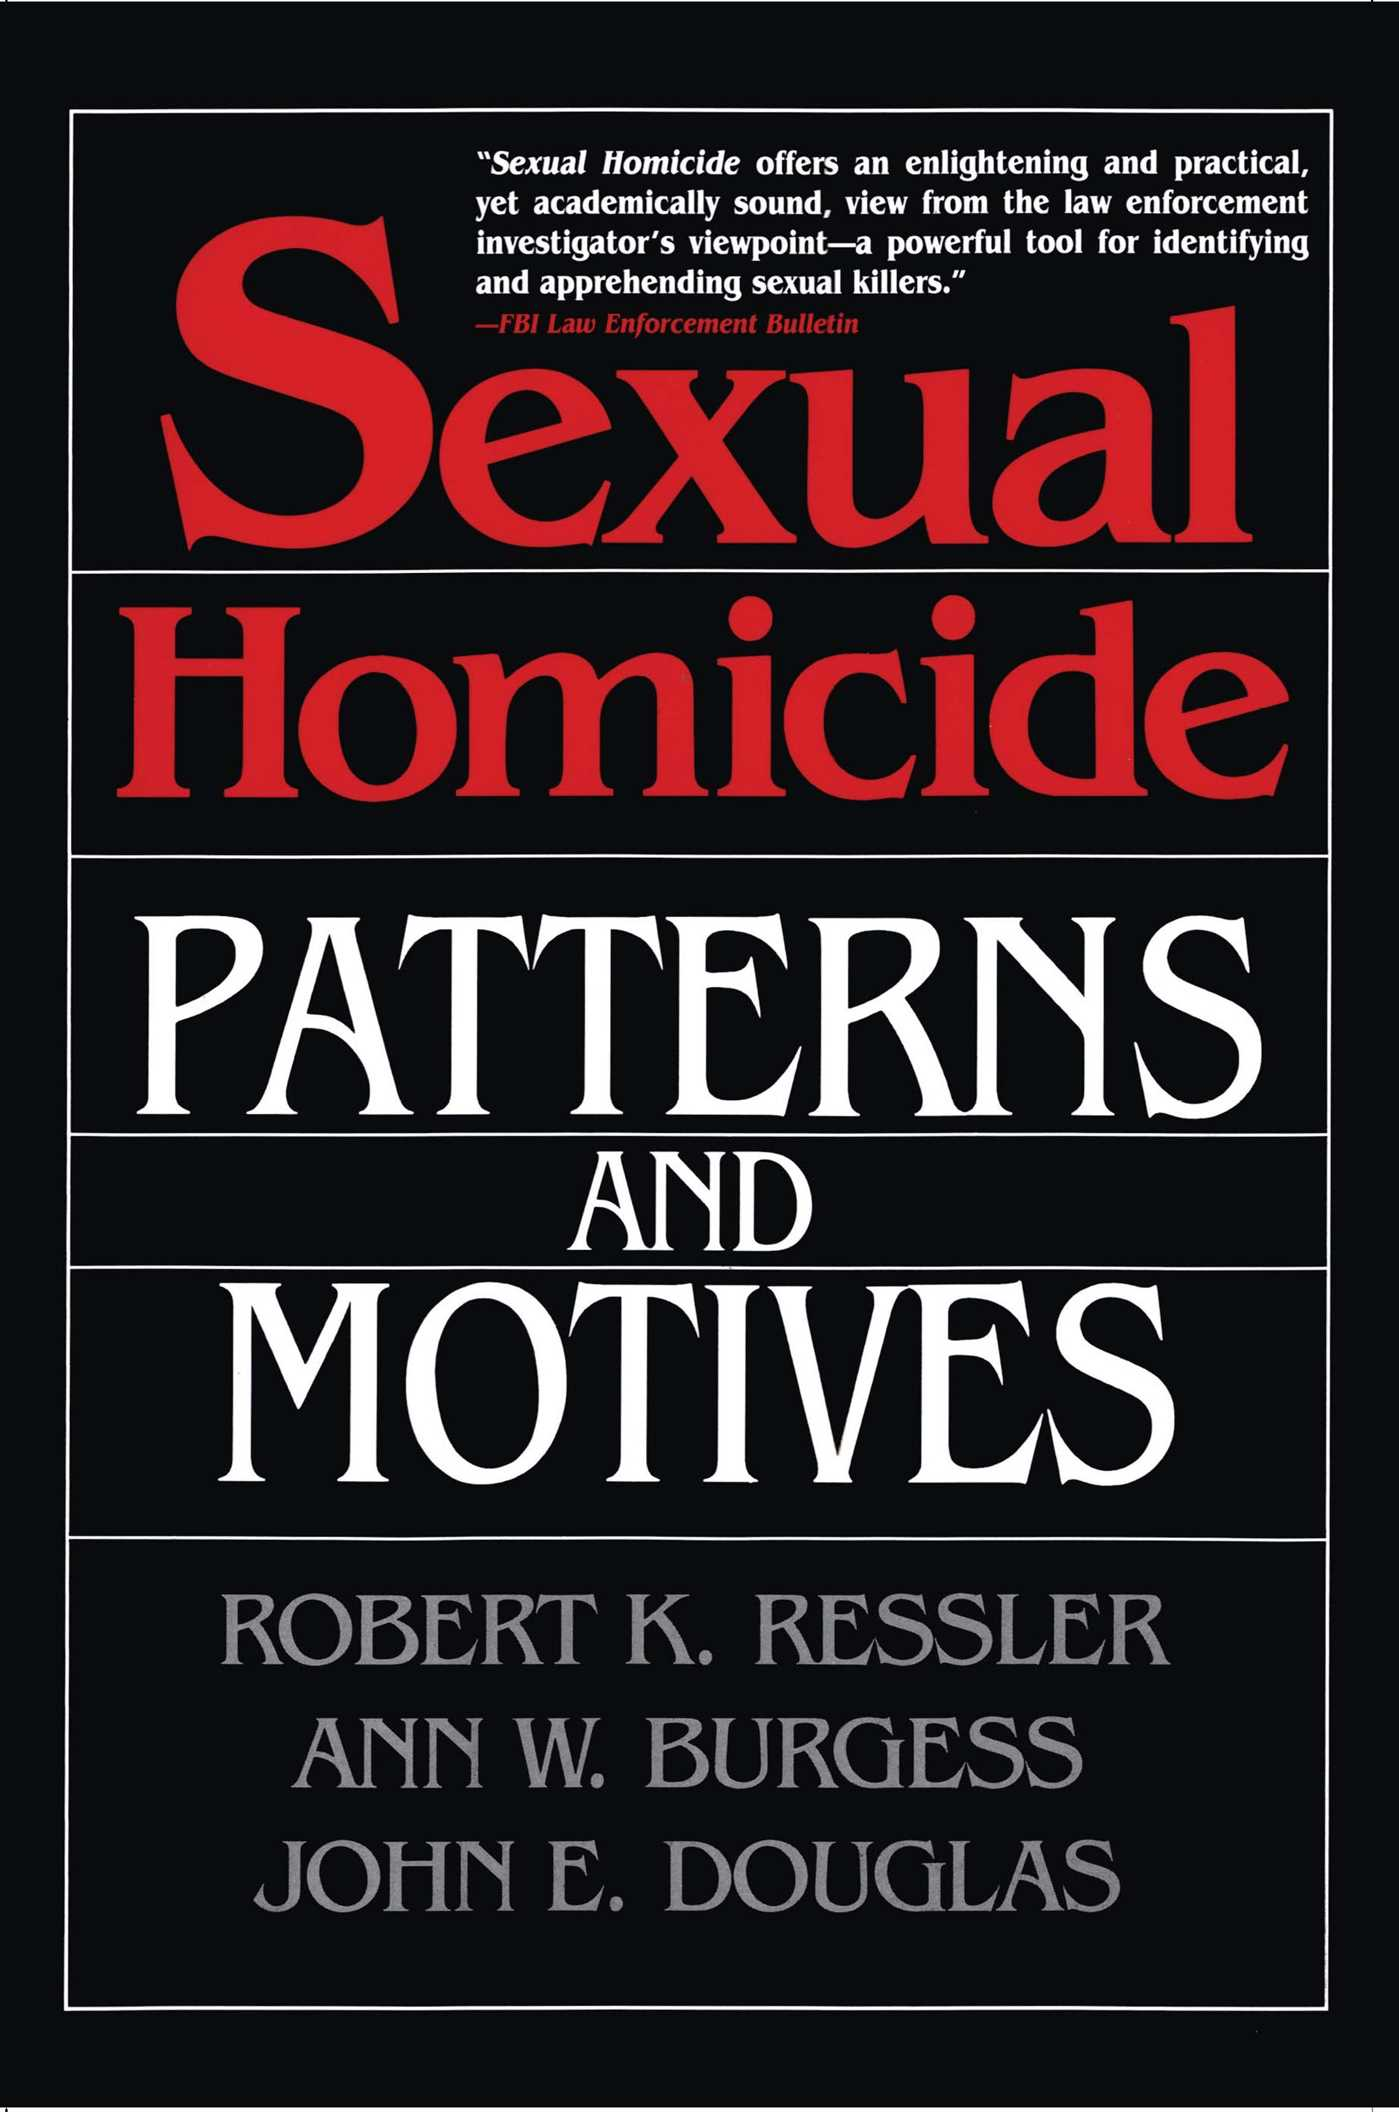 Sexual-homicide-patterns-and-motives-paperback-9781439118313_hr